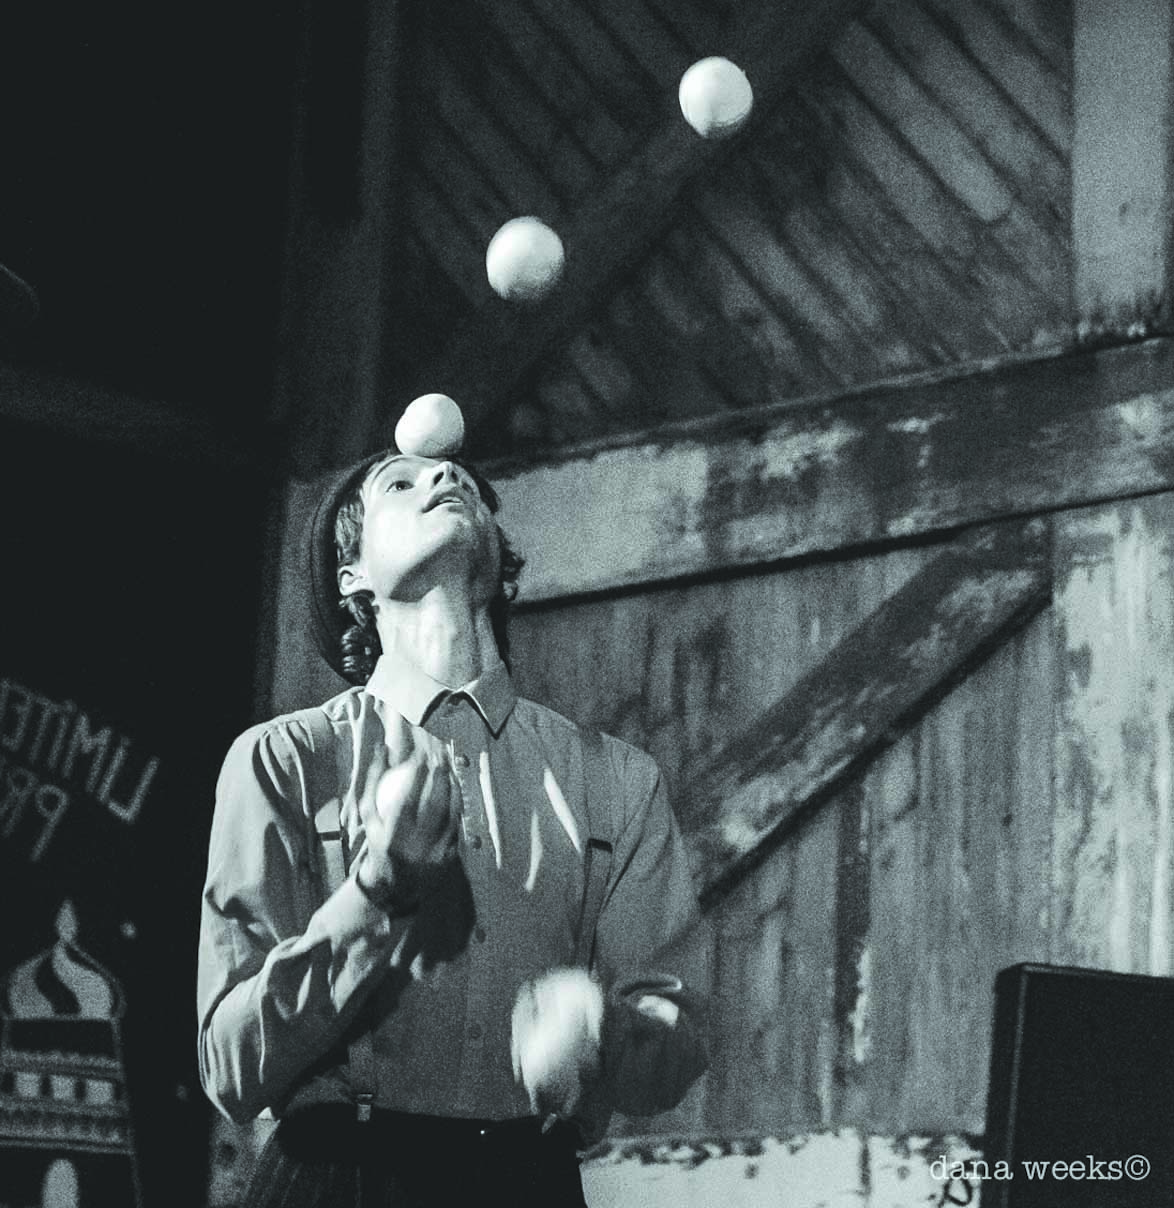 a young man juggling, image is black and white